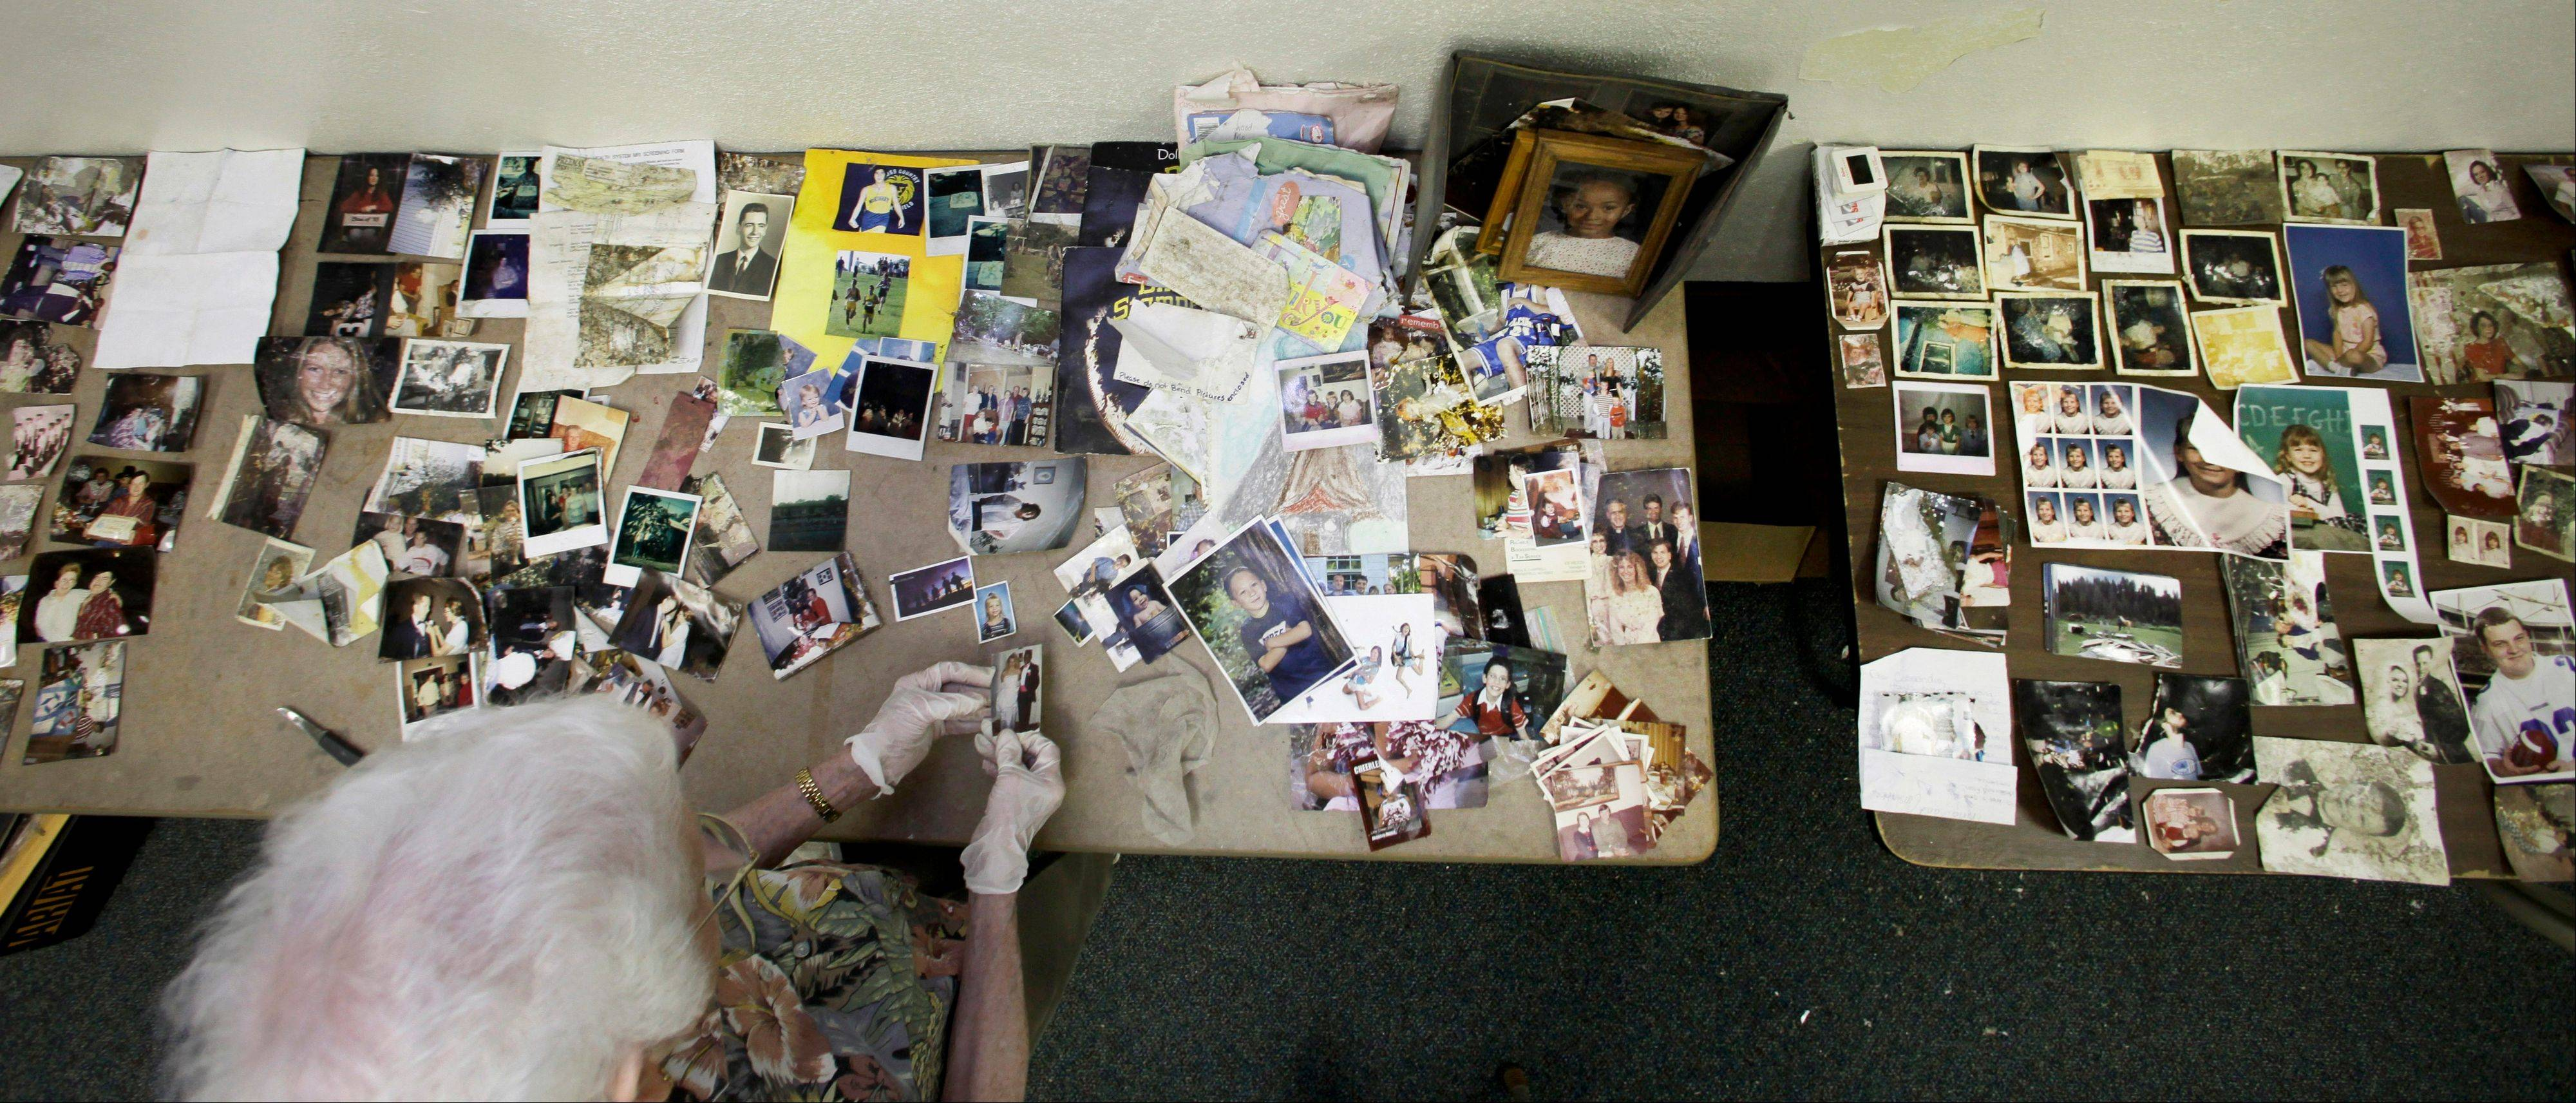 Vivian Love, a volunteer at the First Baptist Church in Carthage, Mo., cleans and sorts photos and other personal documents found among rubble after a powerful EF-5 tornado destroyed a large swath of nearby Joplin, Mo. on May 22, 2011. The church has taken on the task of preserving thousands of lost photos and reuniting them with their owners.